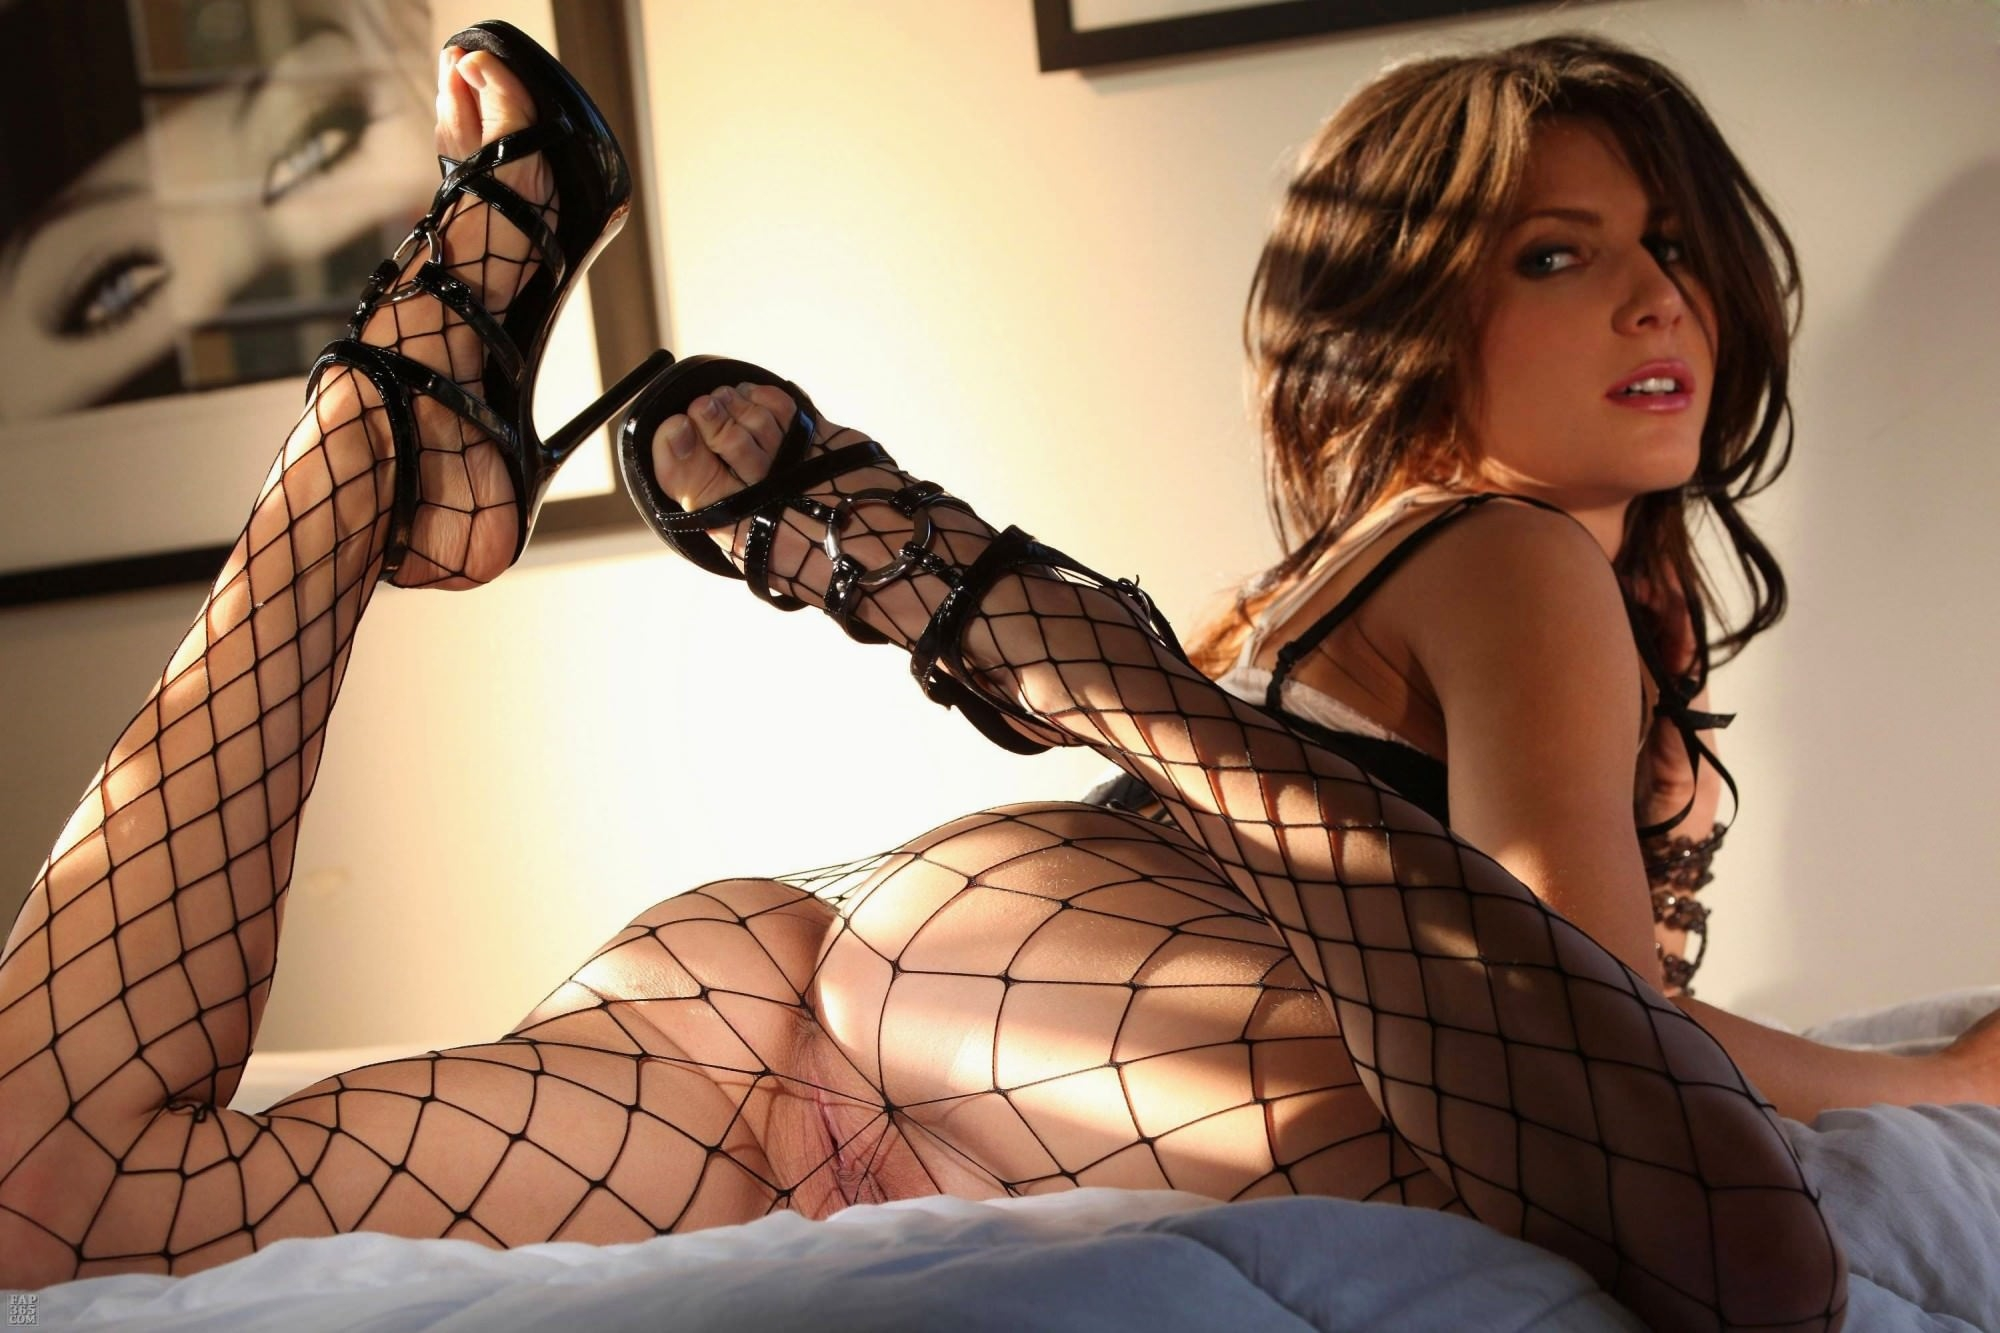 Bryci Naked In Fishnet Stockings